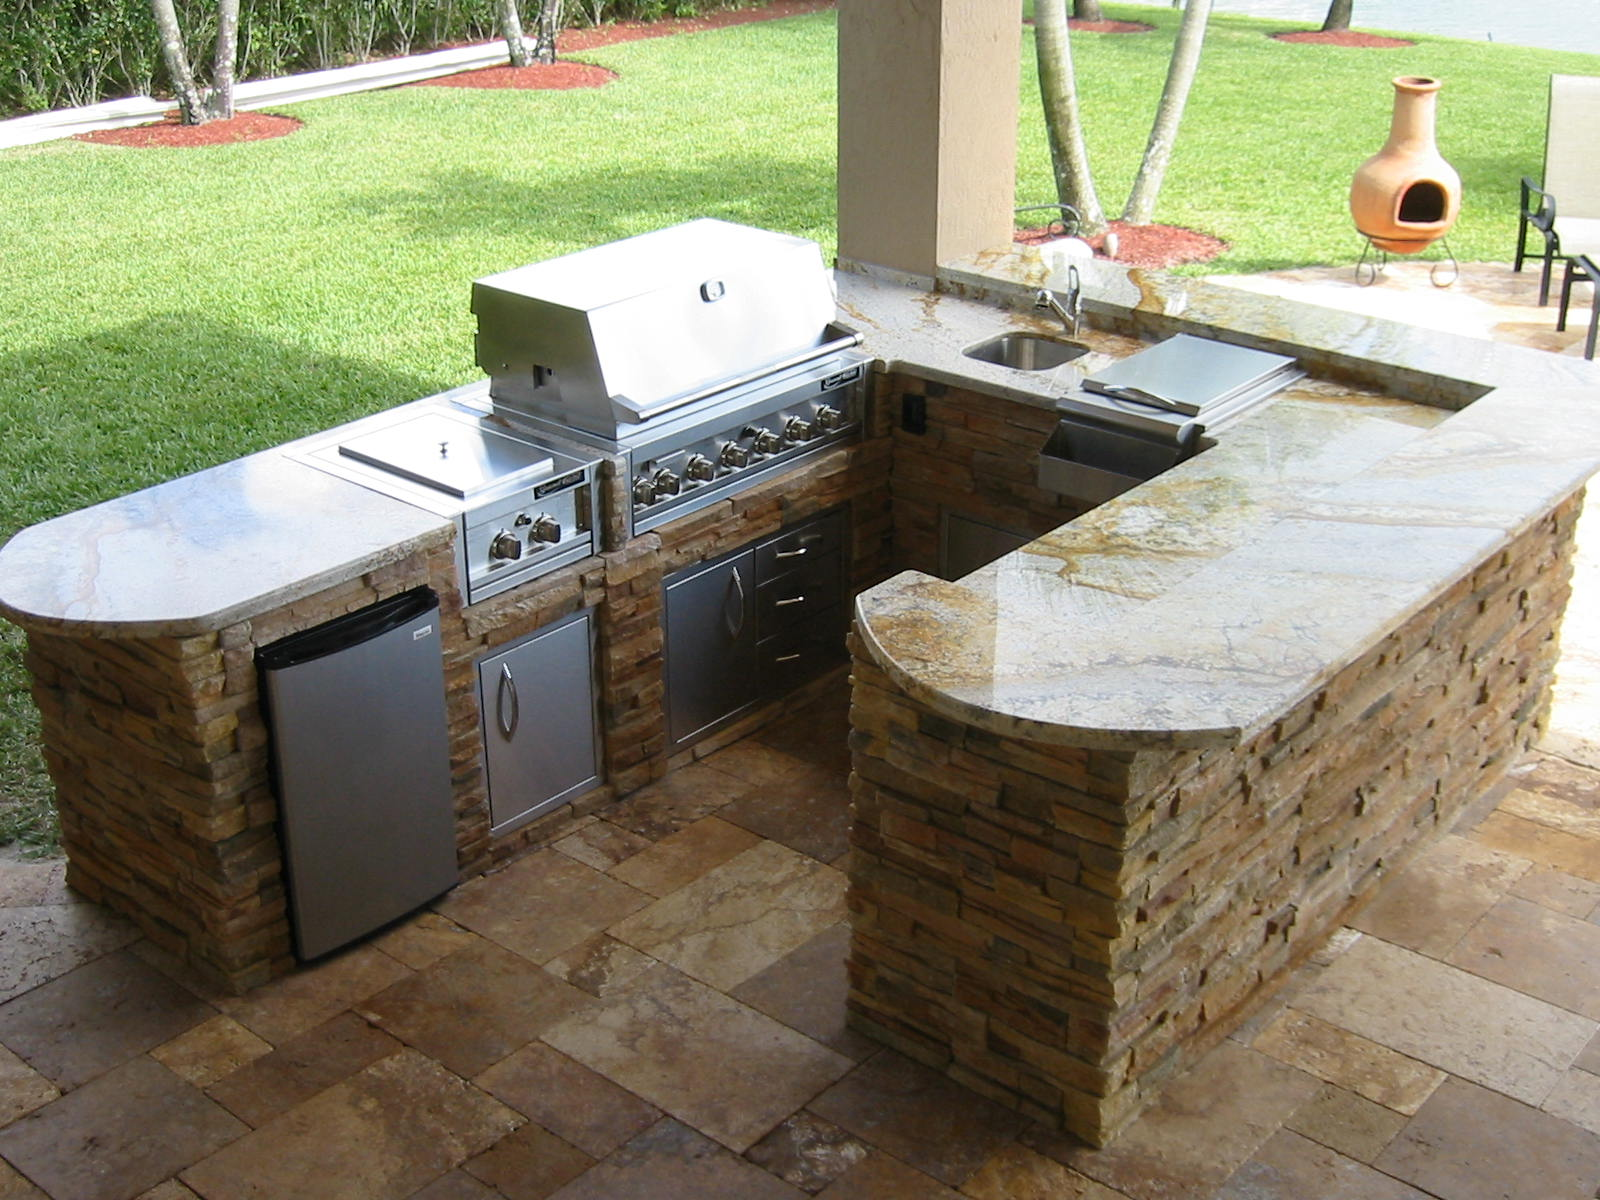 Outdoor kitchen depot outdoor kitchen building and design for Built in barbecue grill ideas